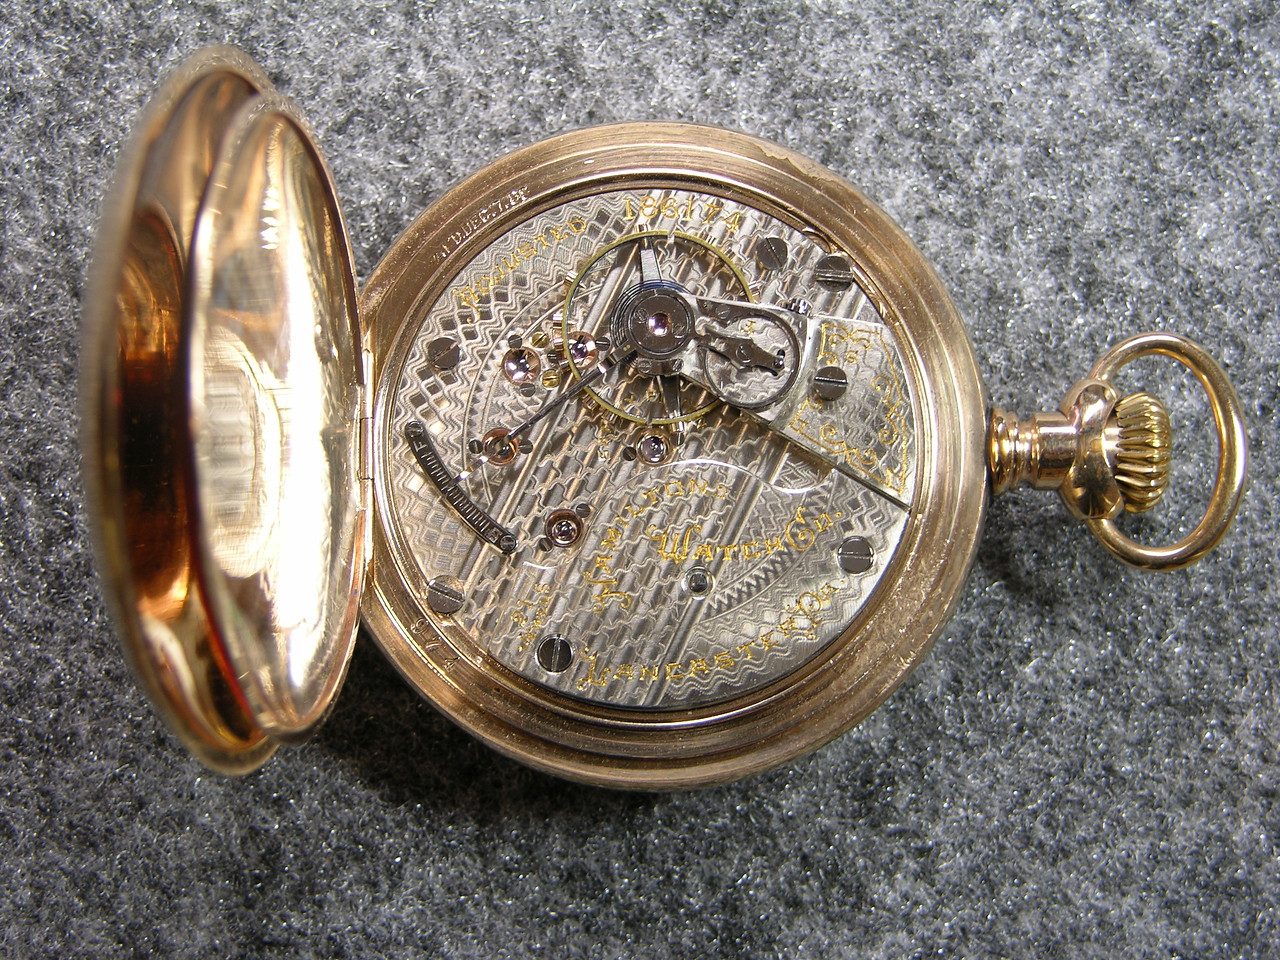 942 dial, SN 186174                                    21 Jewels, manufactured 1900-1914         total production 5,418